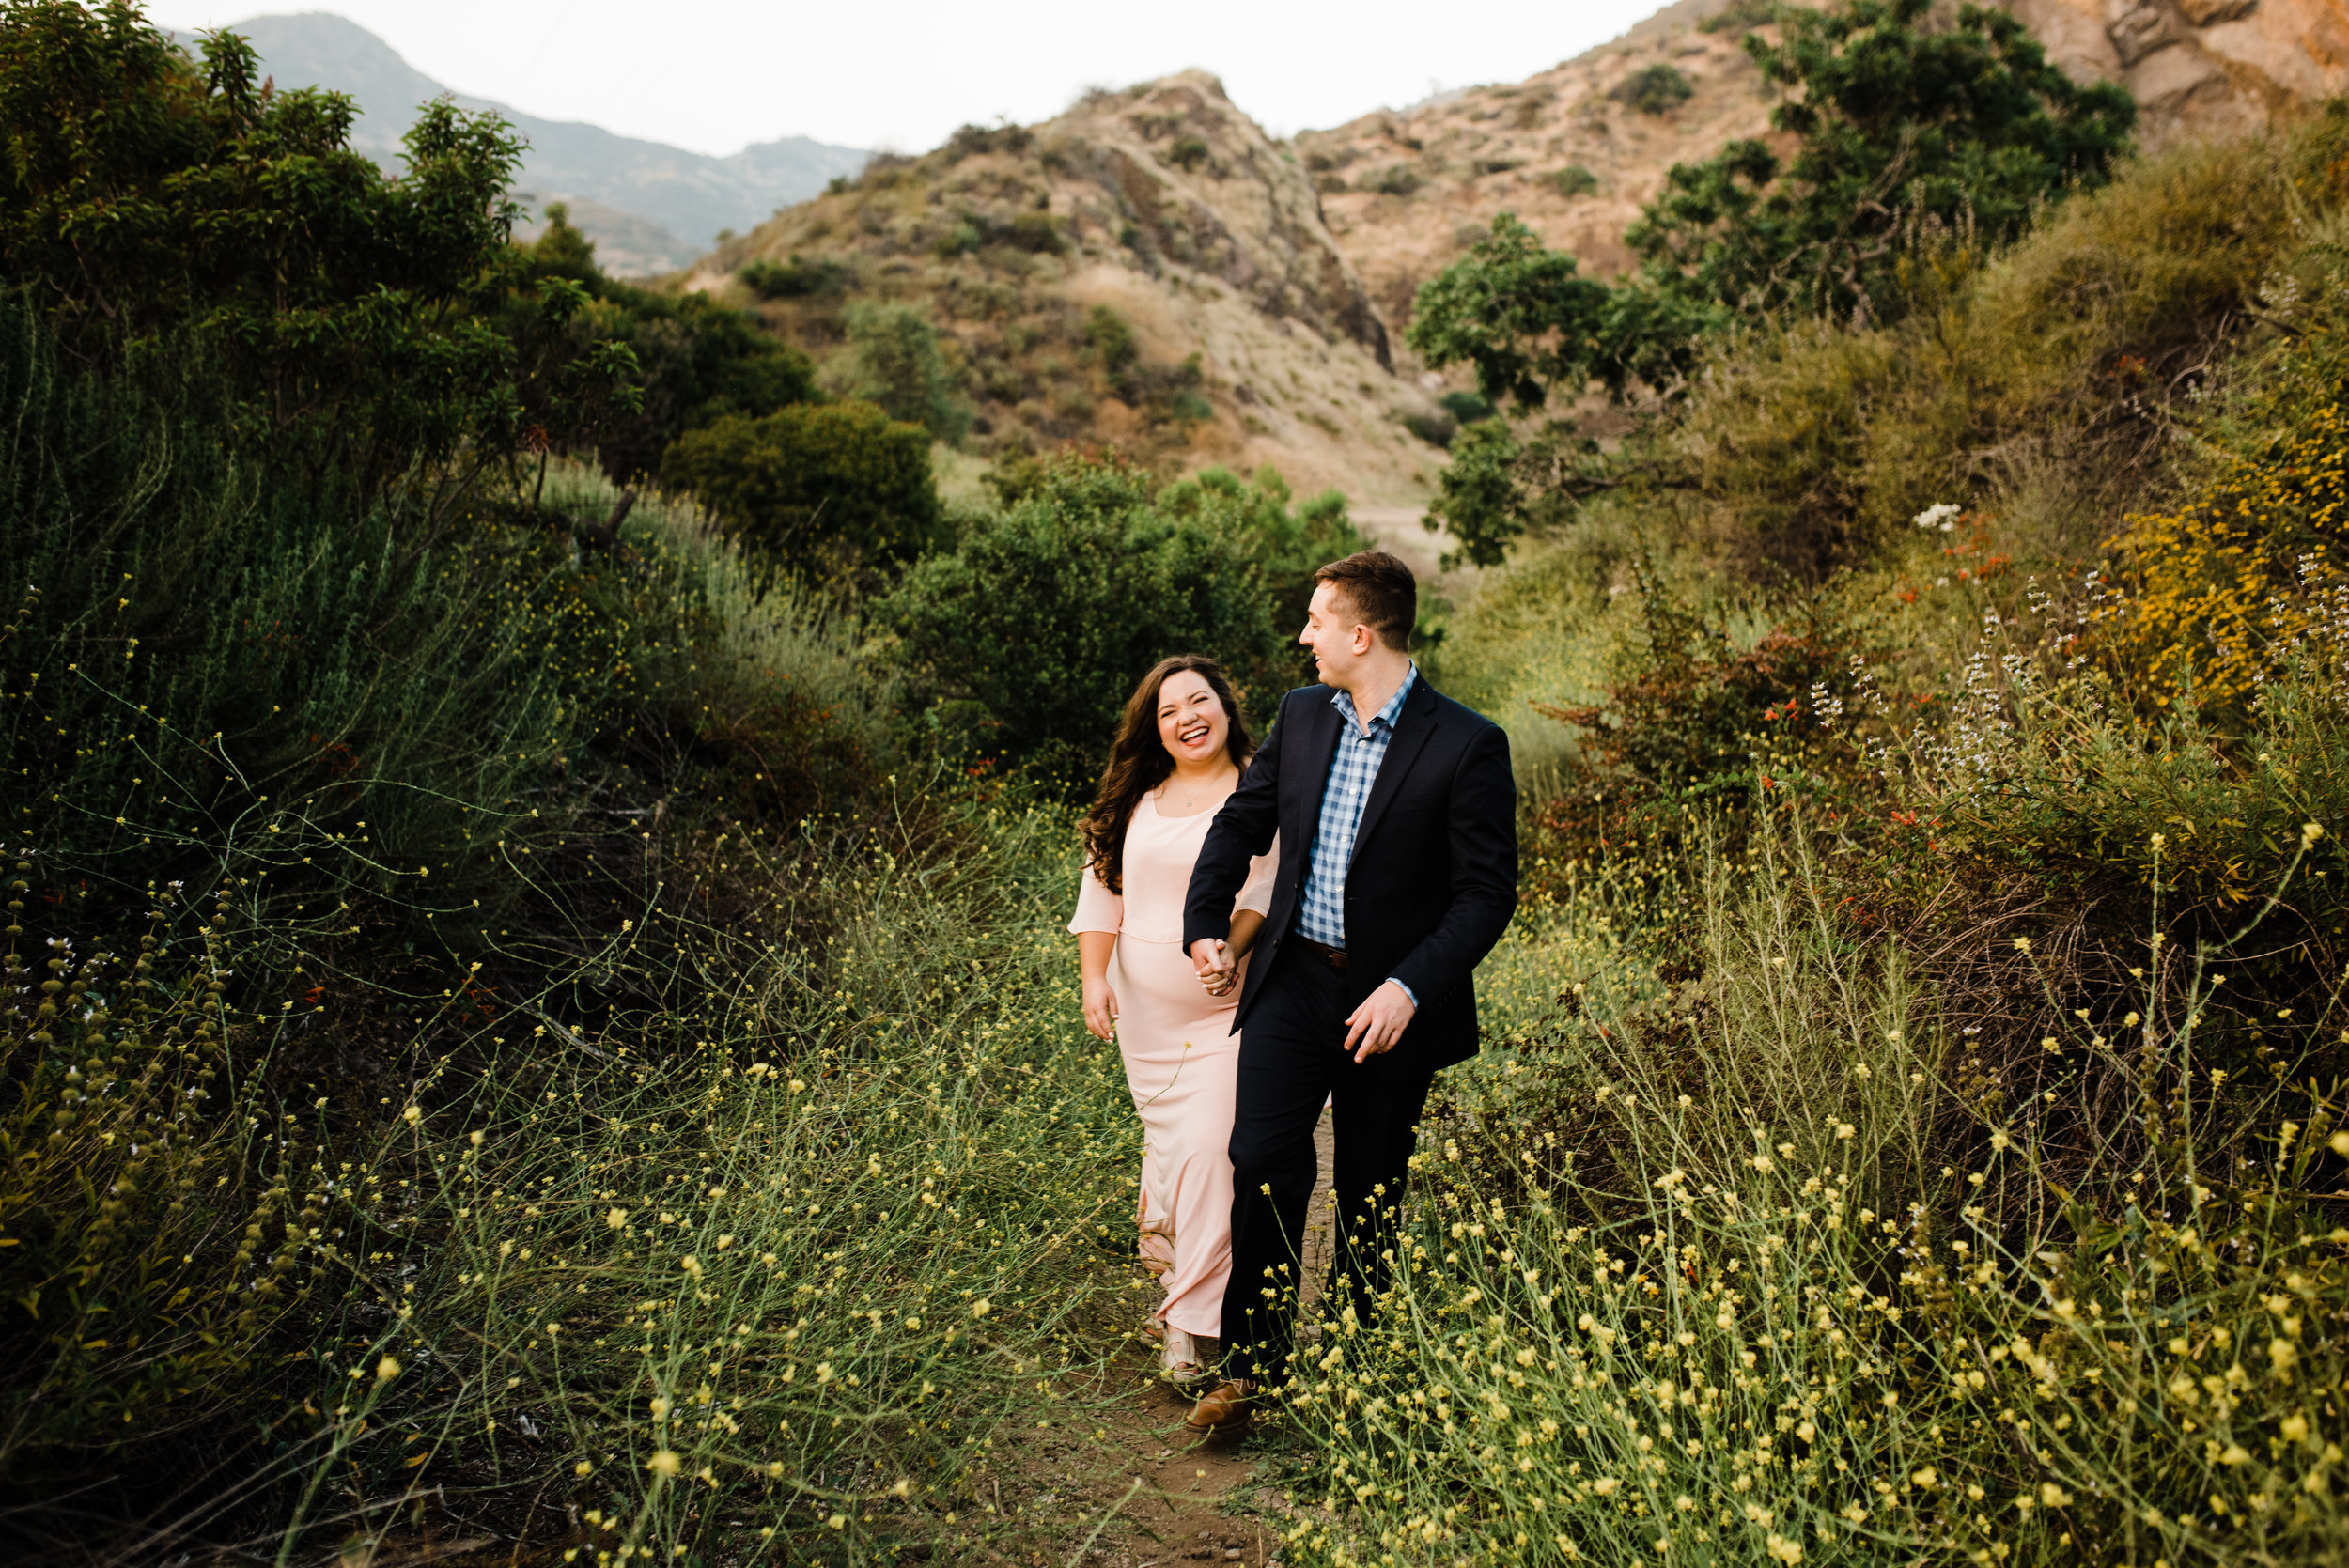 Adventuring through LA's Bronson Canyon, engaged couple walking together